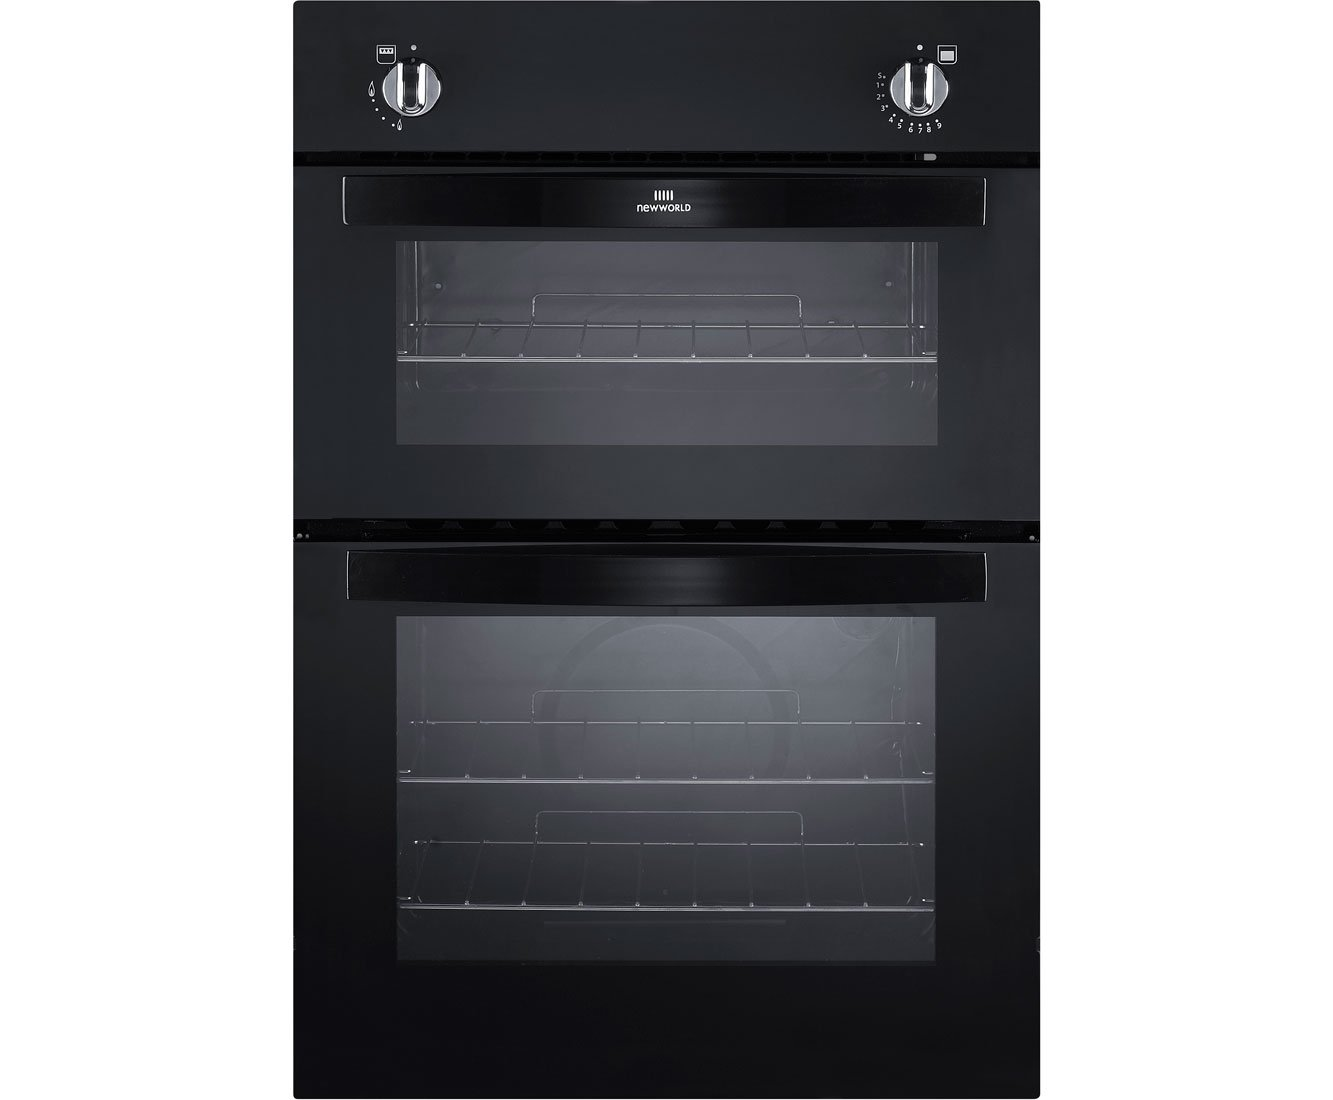 Built In Single Gas Oven Part - 19: Built-in Single Gas Oven Grill FSD Black: Amazon.co.uk: Large Appliances